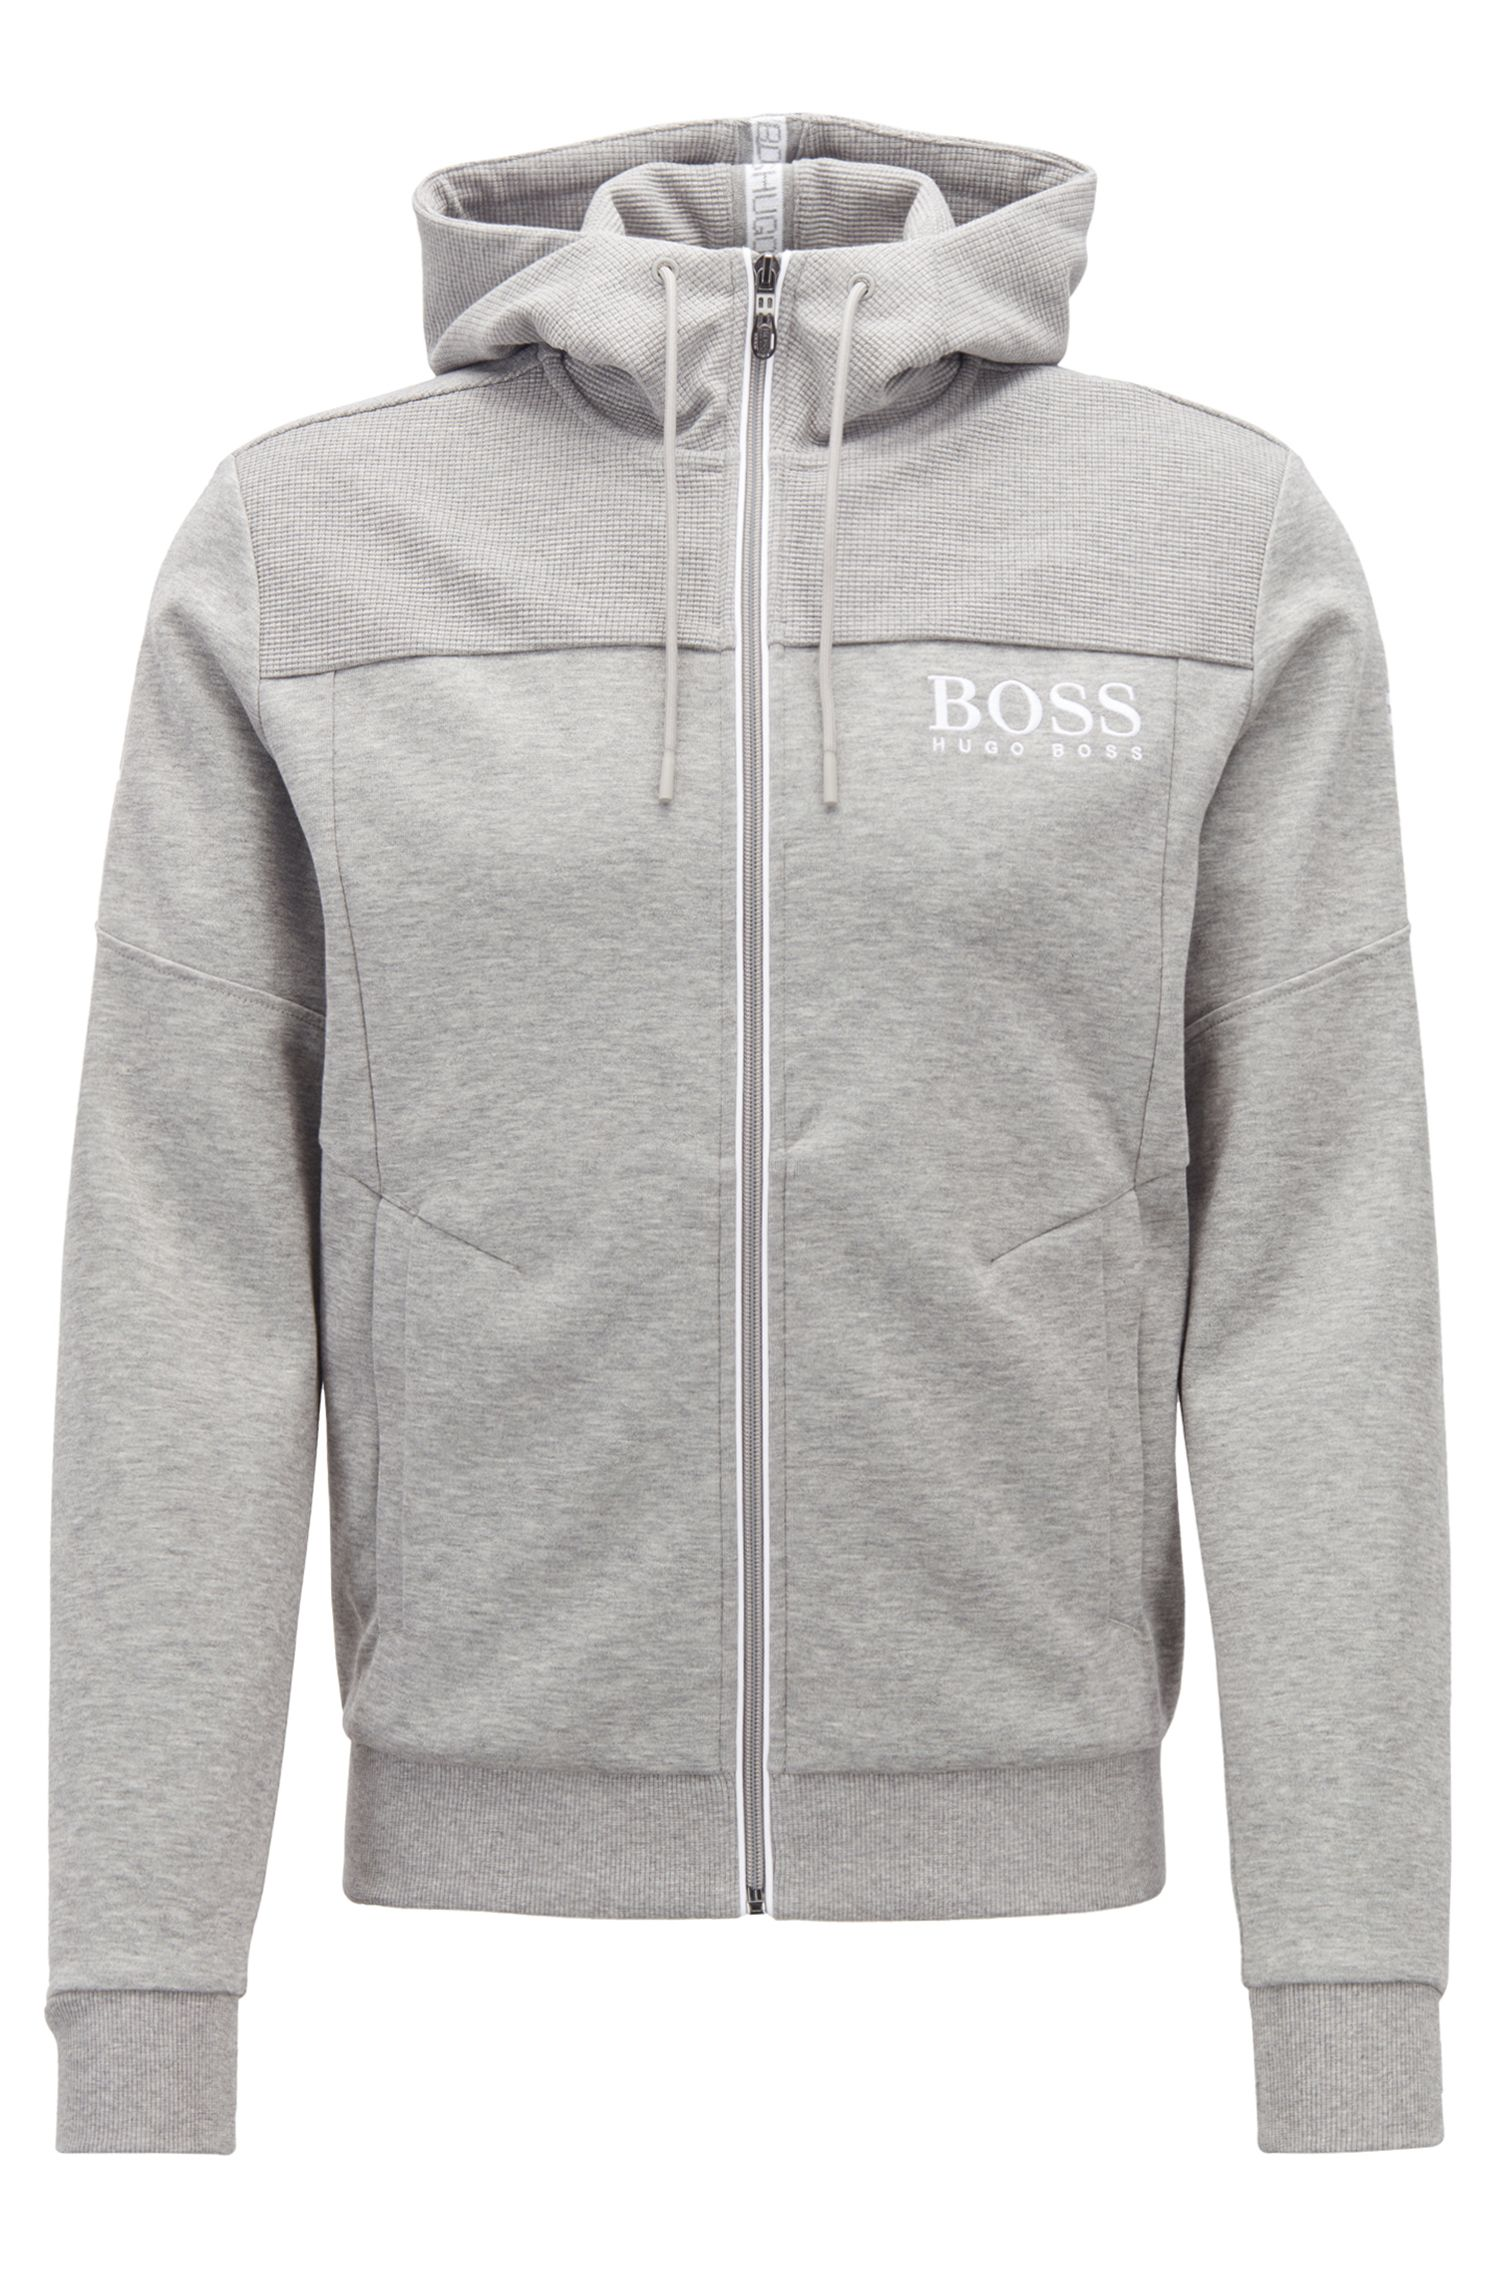 Hooded sweatshirt with contrast zip and logo detail